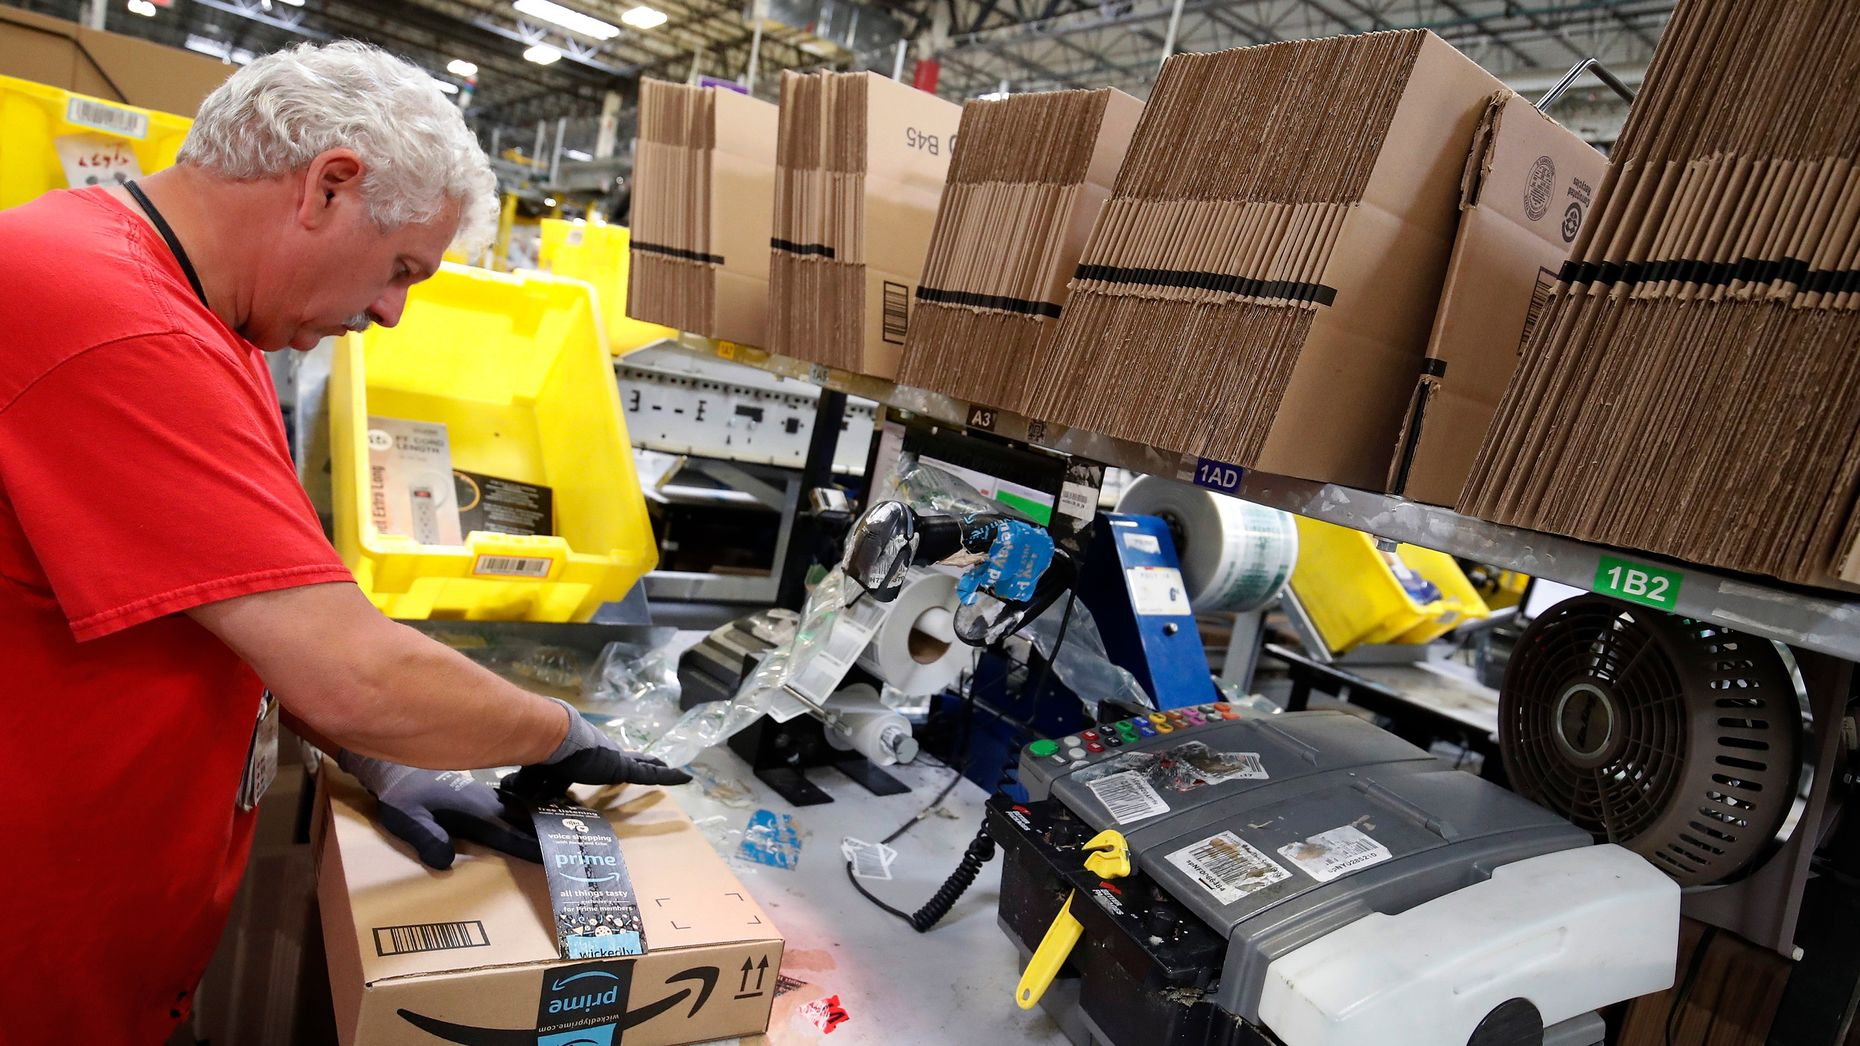 A worker preparing an Amazon package for shipment, at Amazon's fulfillment center in Kenosha, Wisconsin. Photo by Bloomberg.